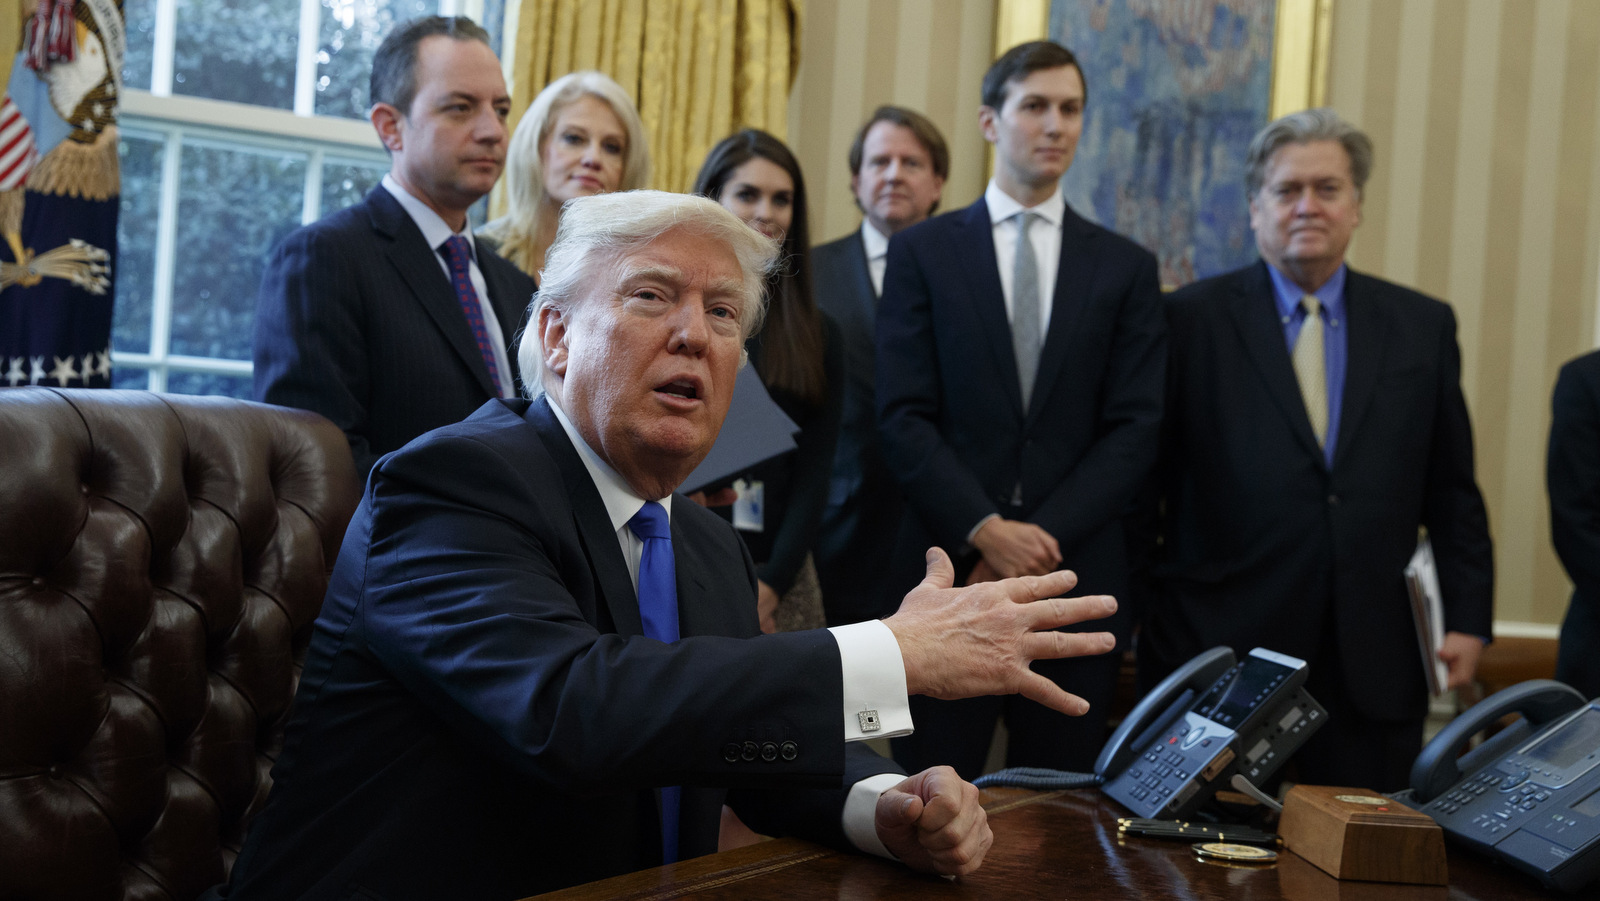 President Donald Trump talks with reporters n the Oval Office of the White House in Washington, Tuesday, Jan. 24, 2017, before signing an executive order on the Keystone XL pipeline. (AP/Evan Vucci)